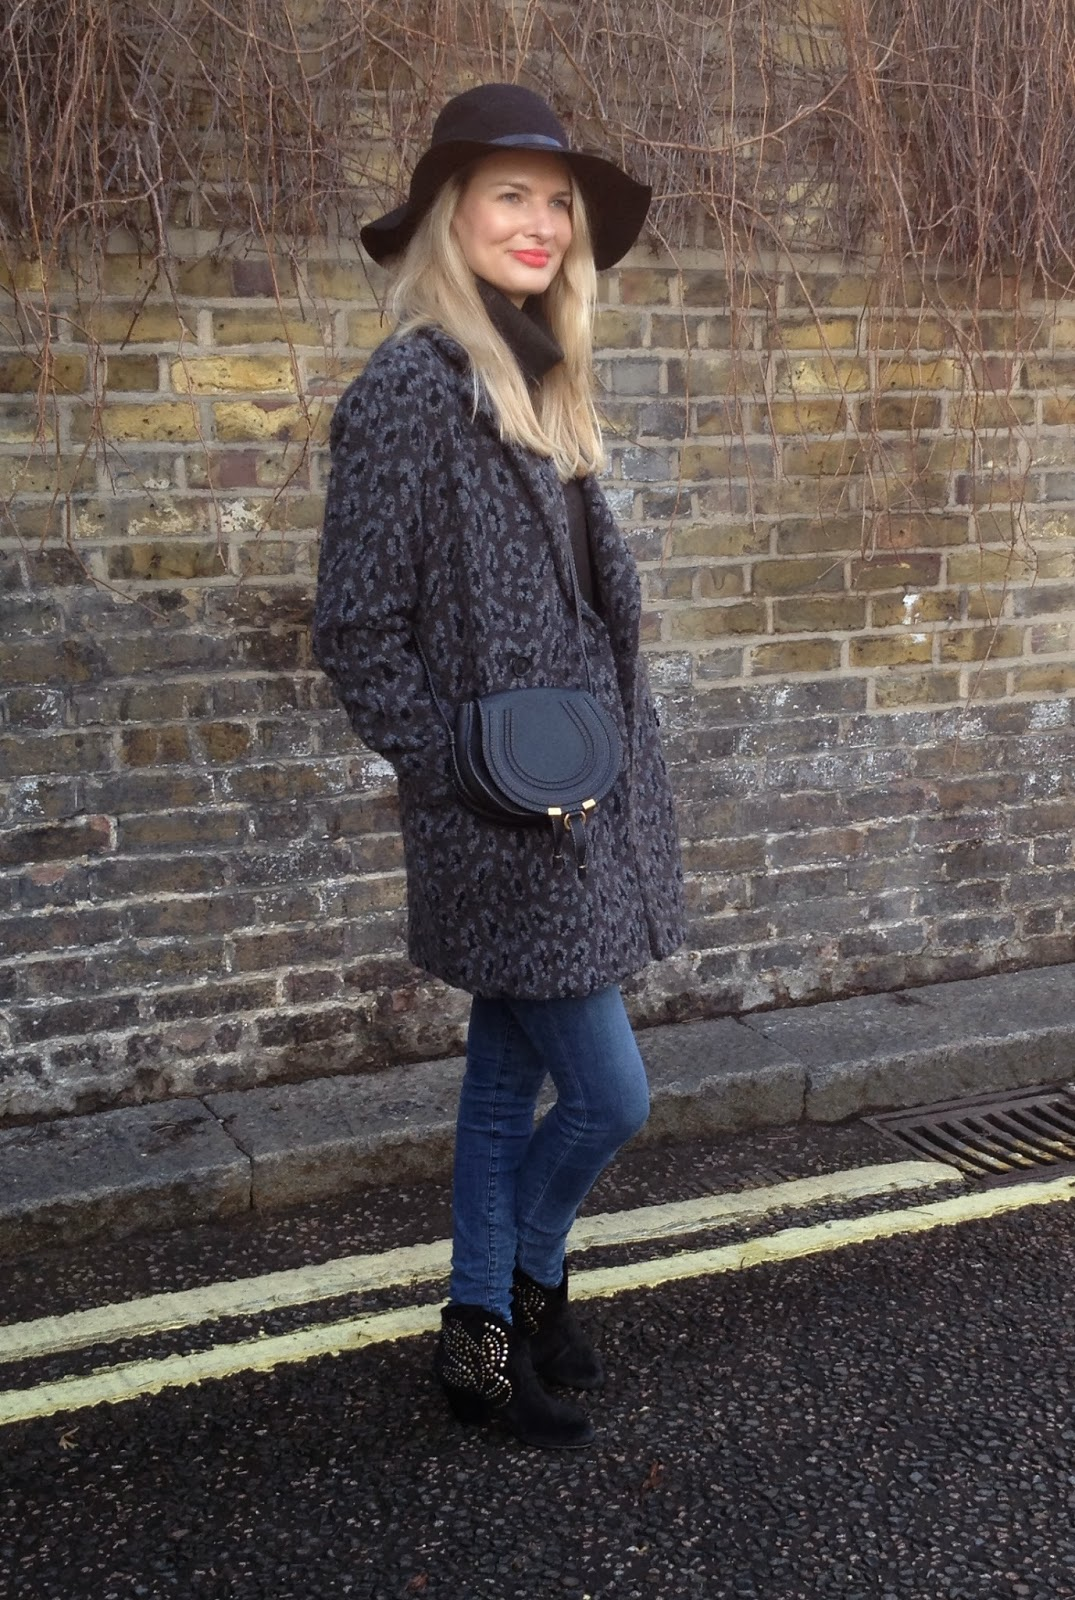 asos, asos hat, mango coat, mango leopardprint coat, chloe bag, chloe marcie bag, chloe marcie, fashion blogger, london street style, ash boots, ash footwear